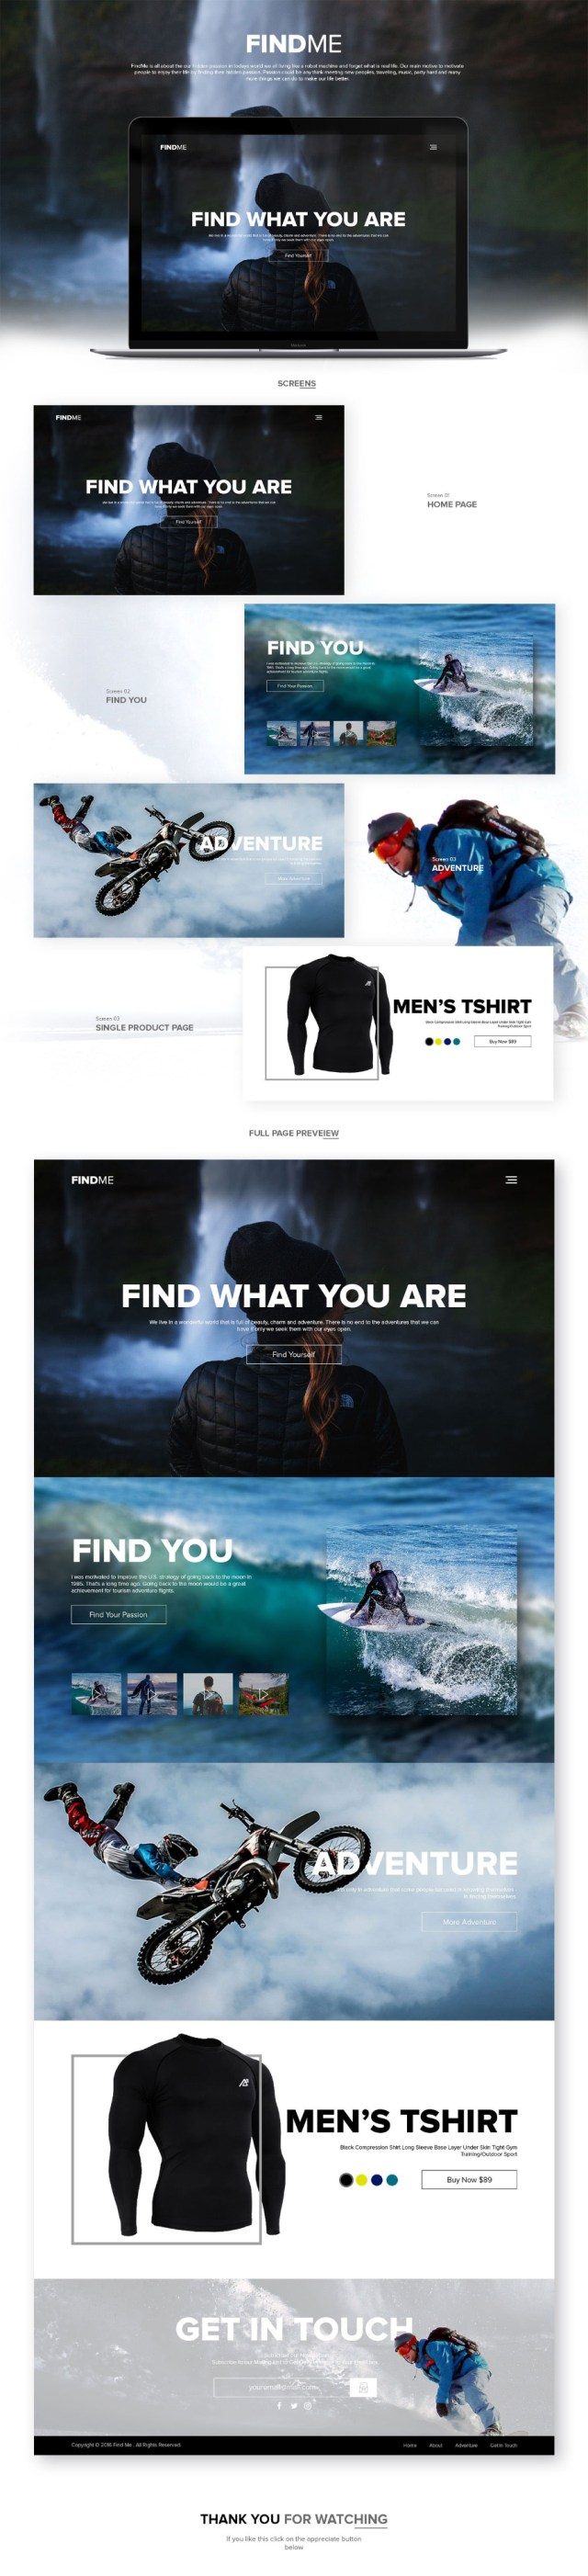 FindMe Full Free PSD Template